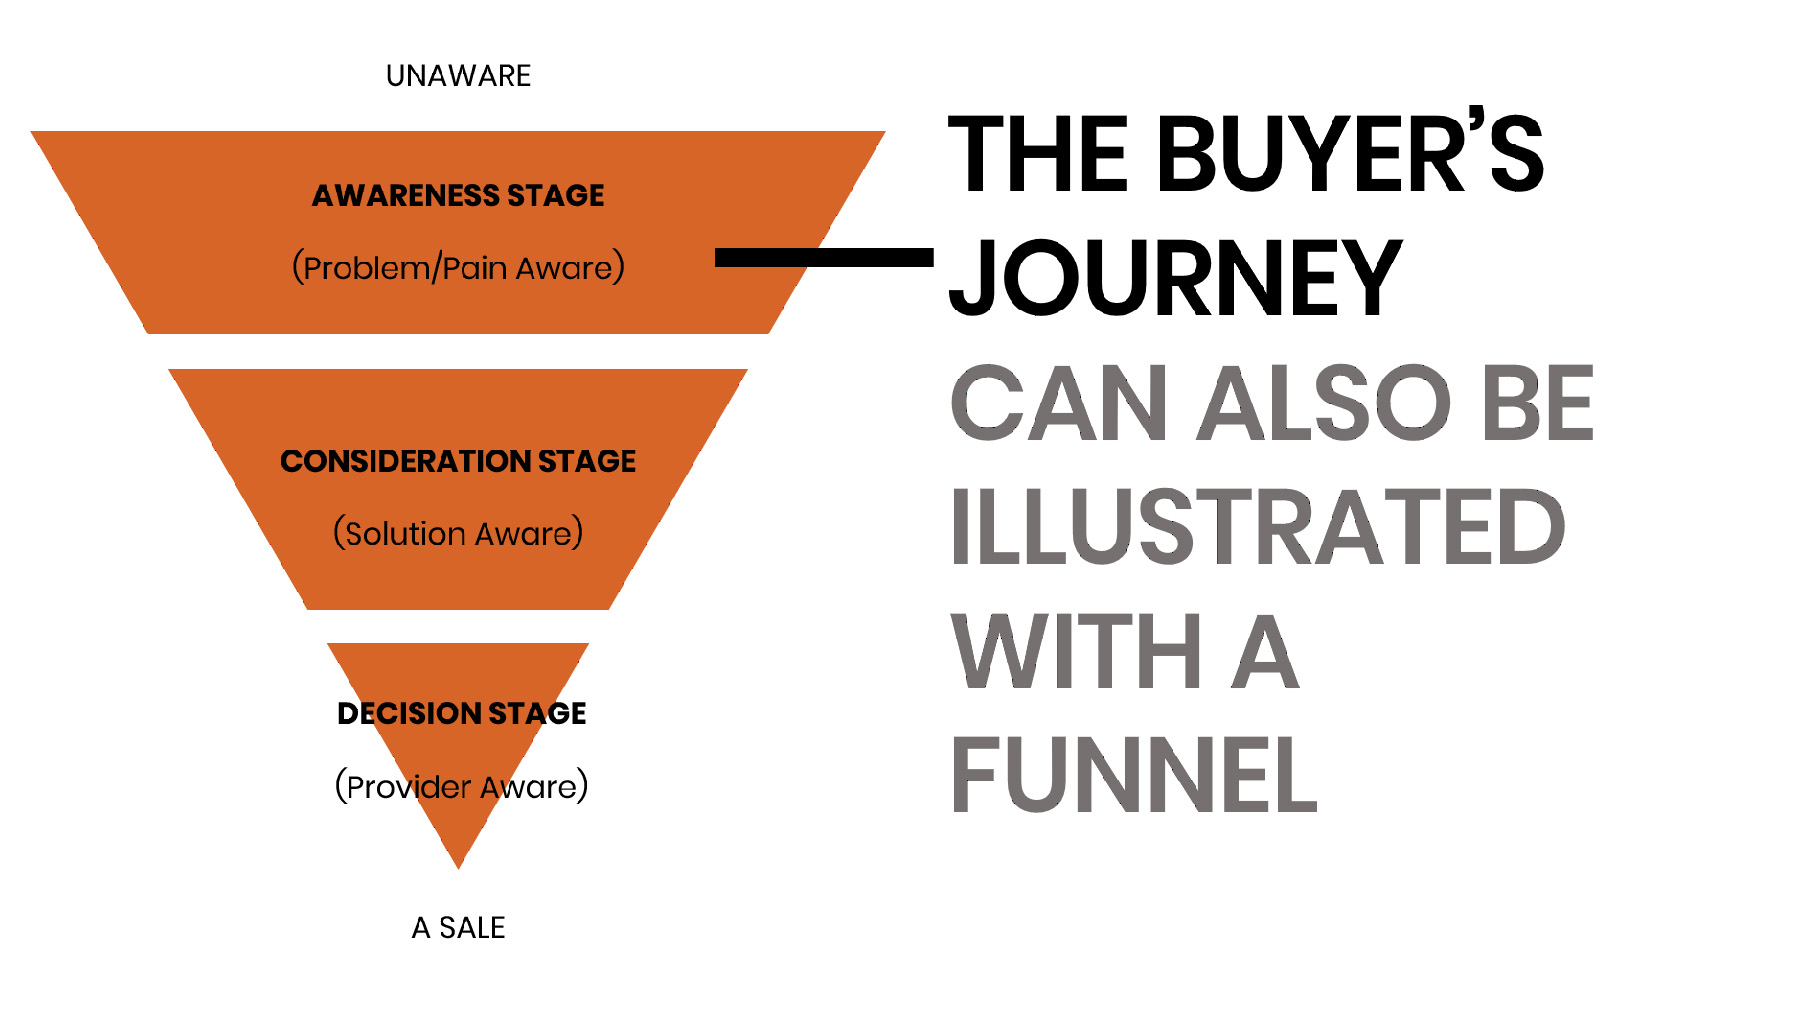 Buyers-Journey-Funnel-1